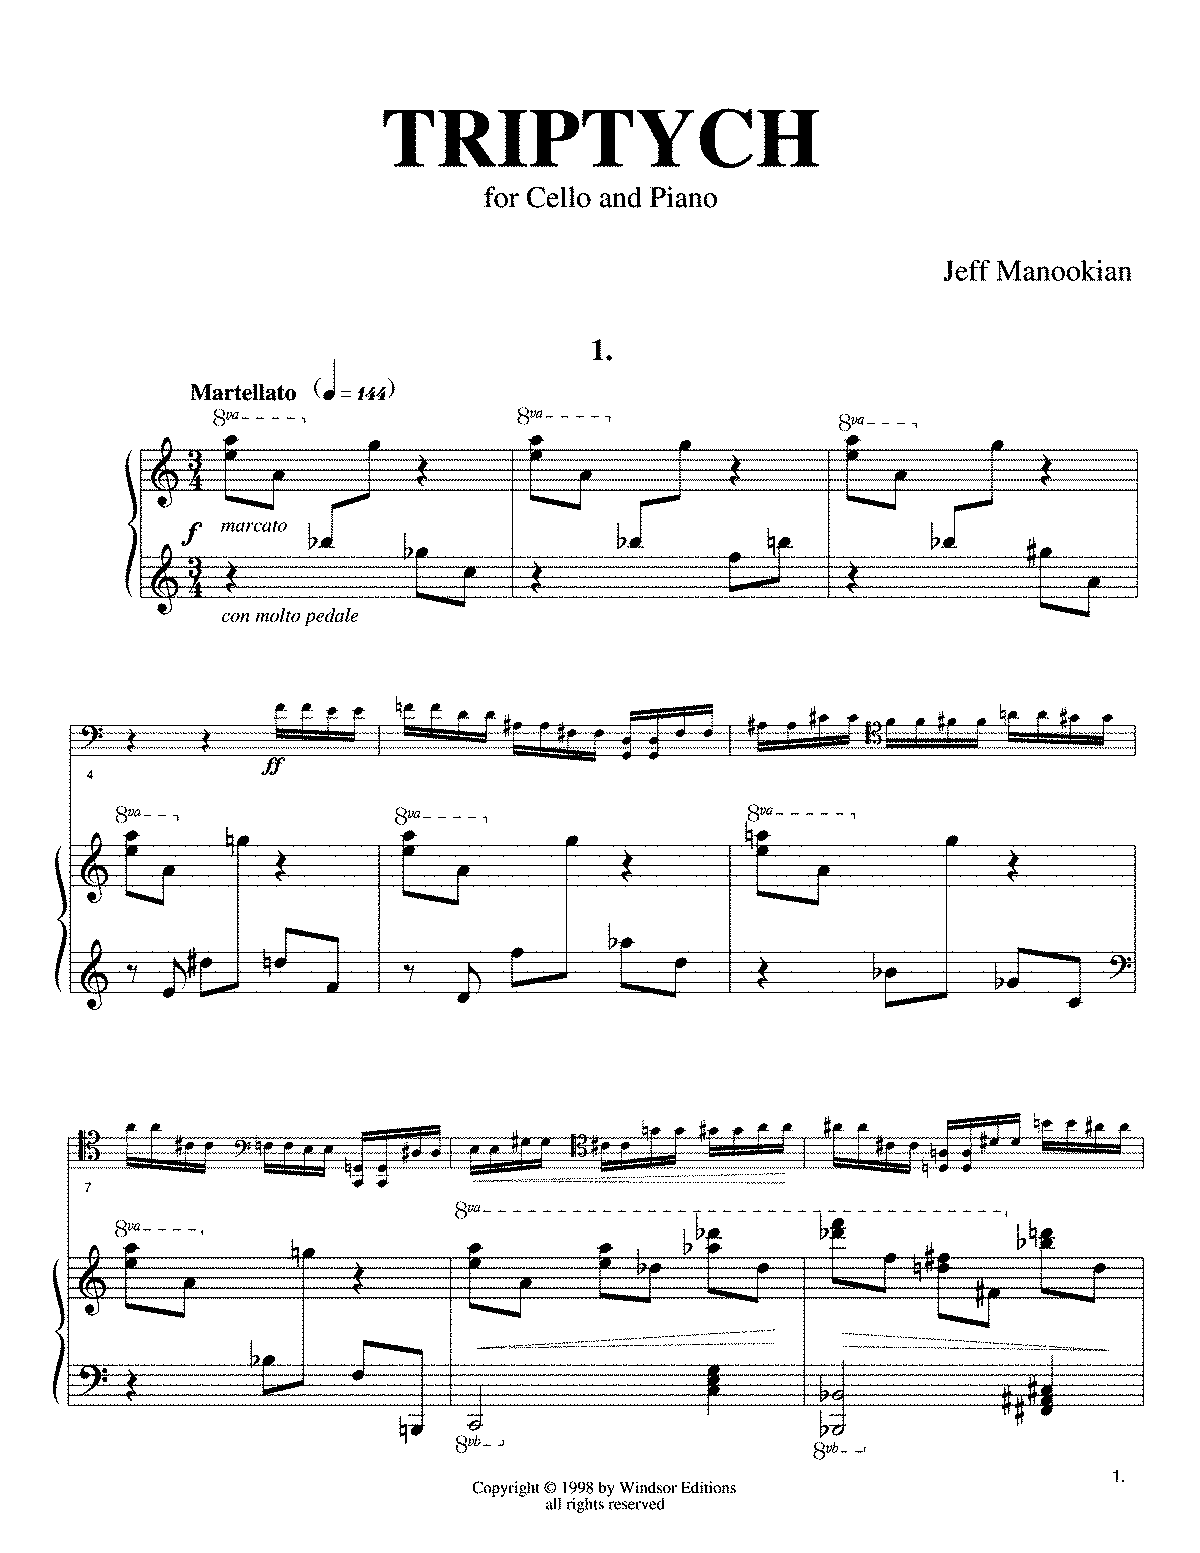 PMLP115979-TRIPTYCH Cello and Piano Score.pdf